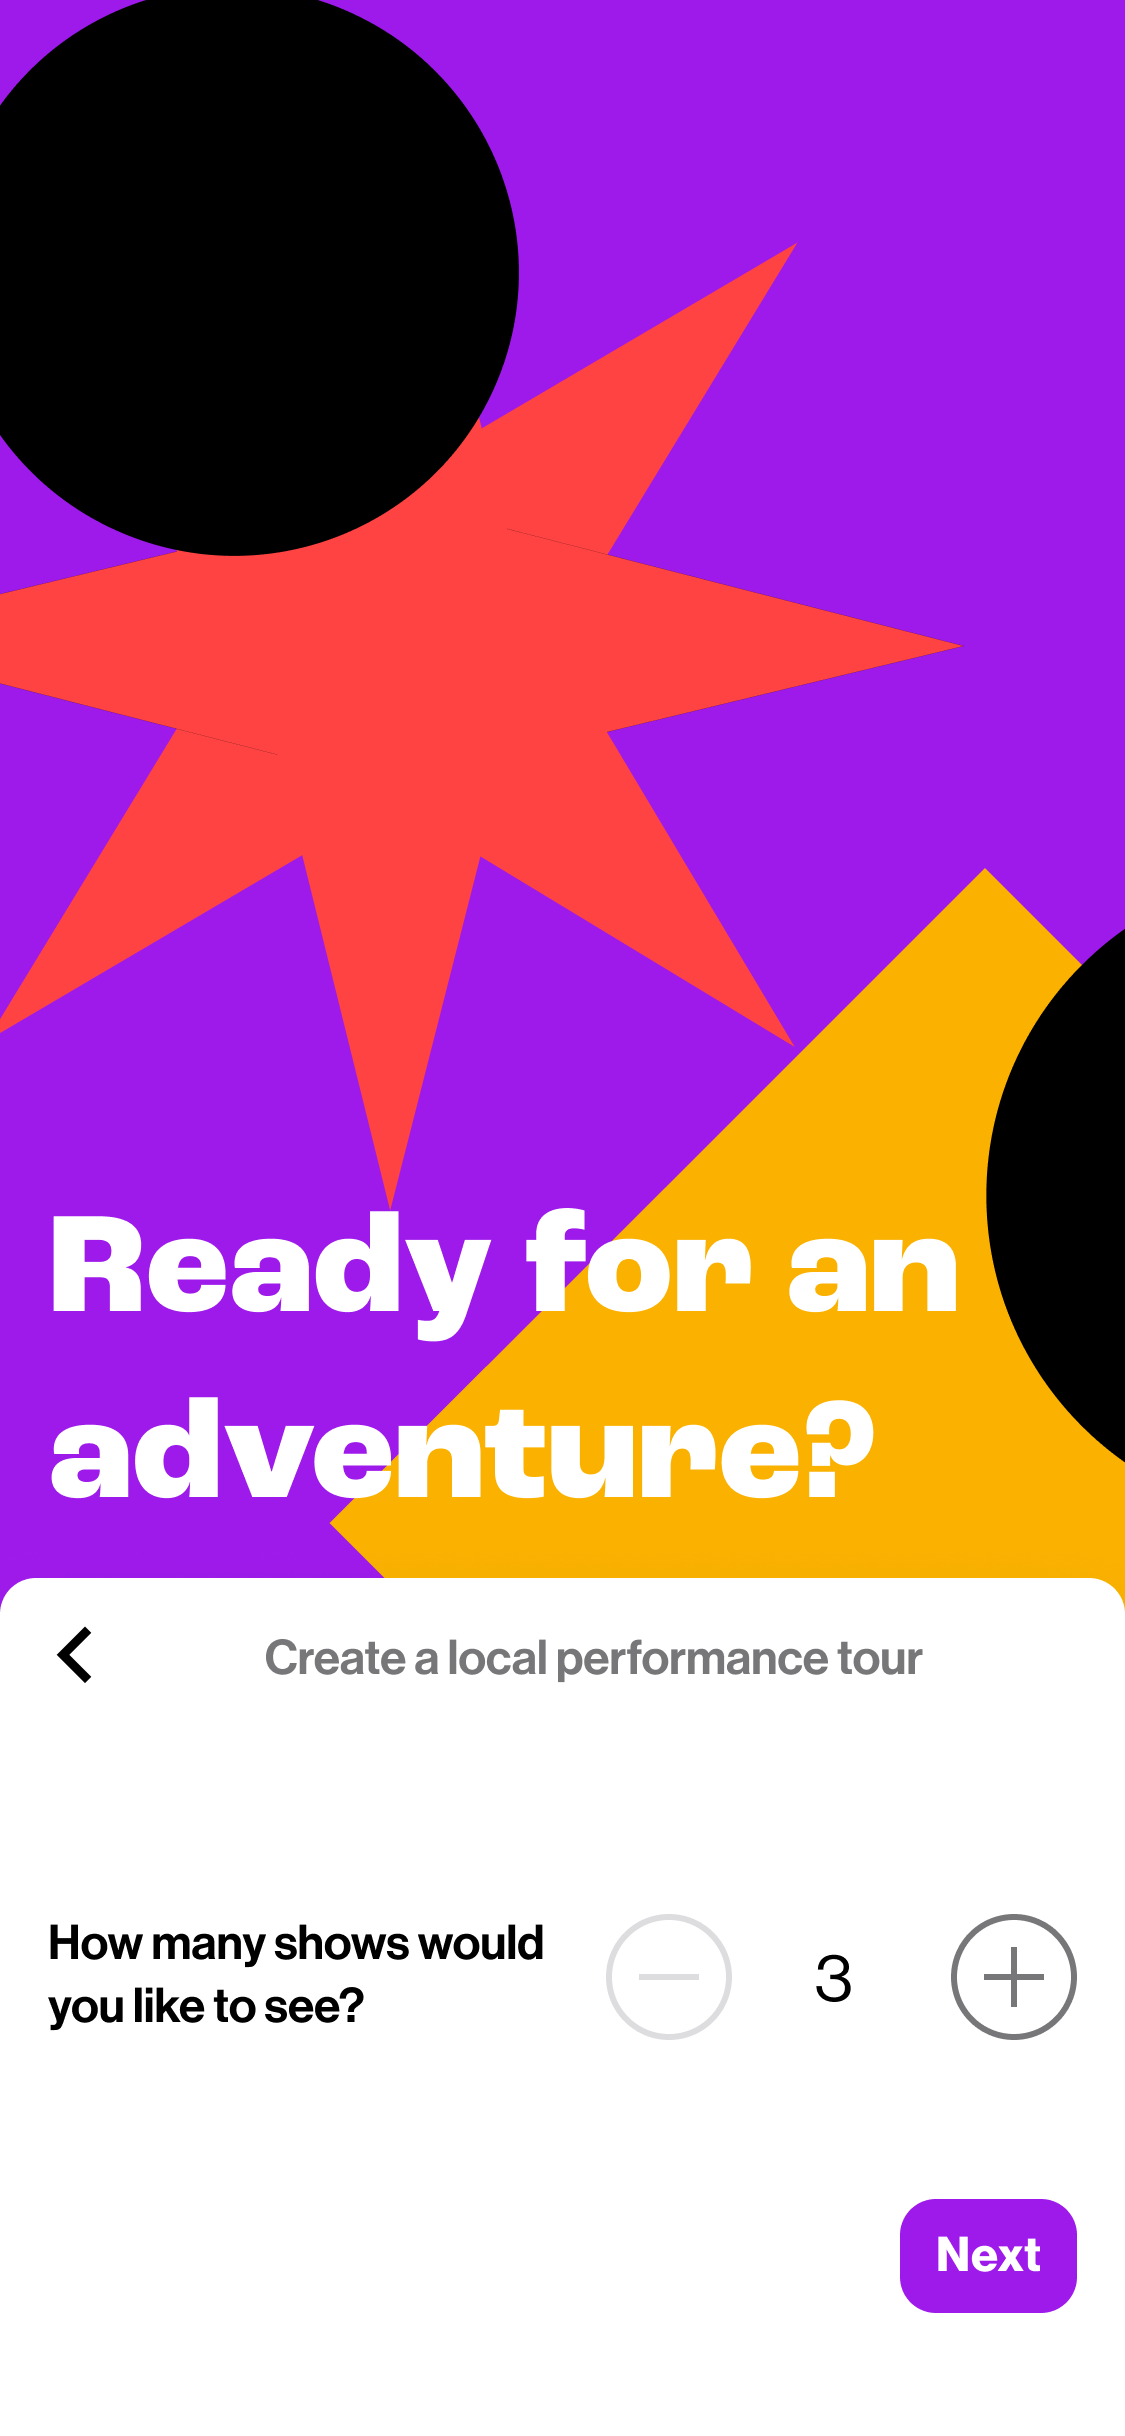 Interface, selecting how many shows you'd like to see.